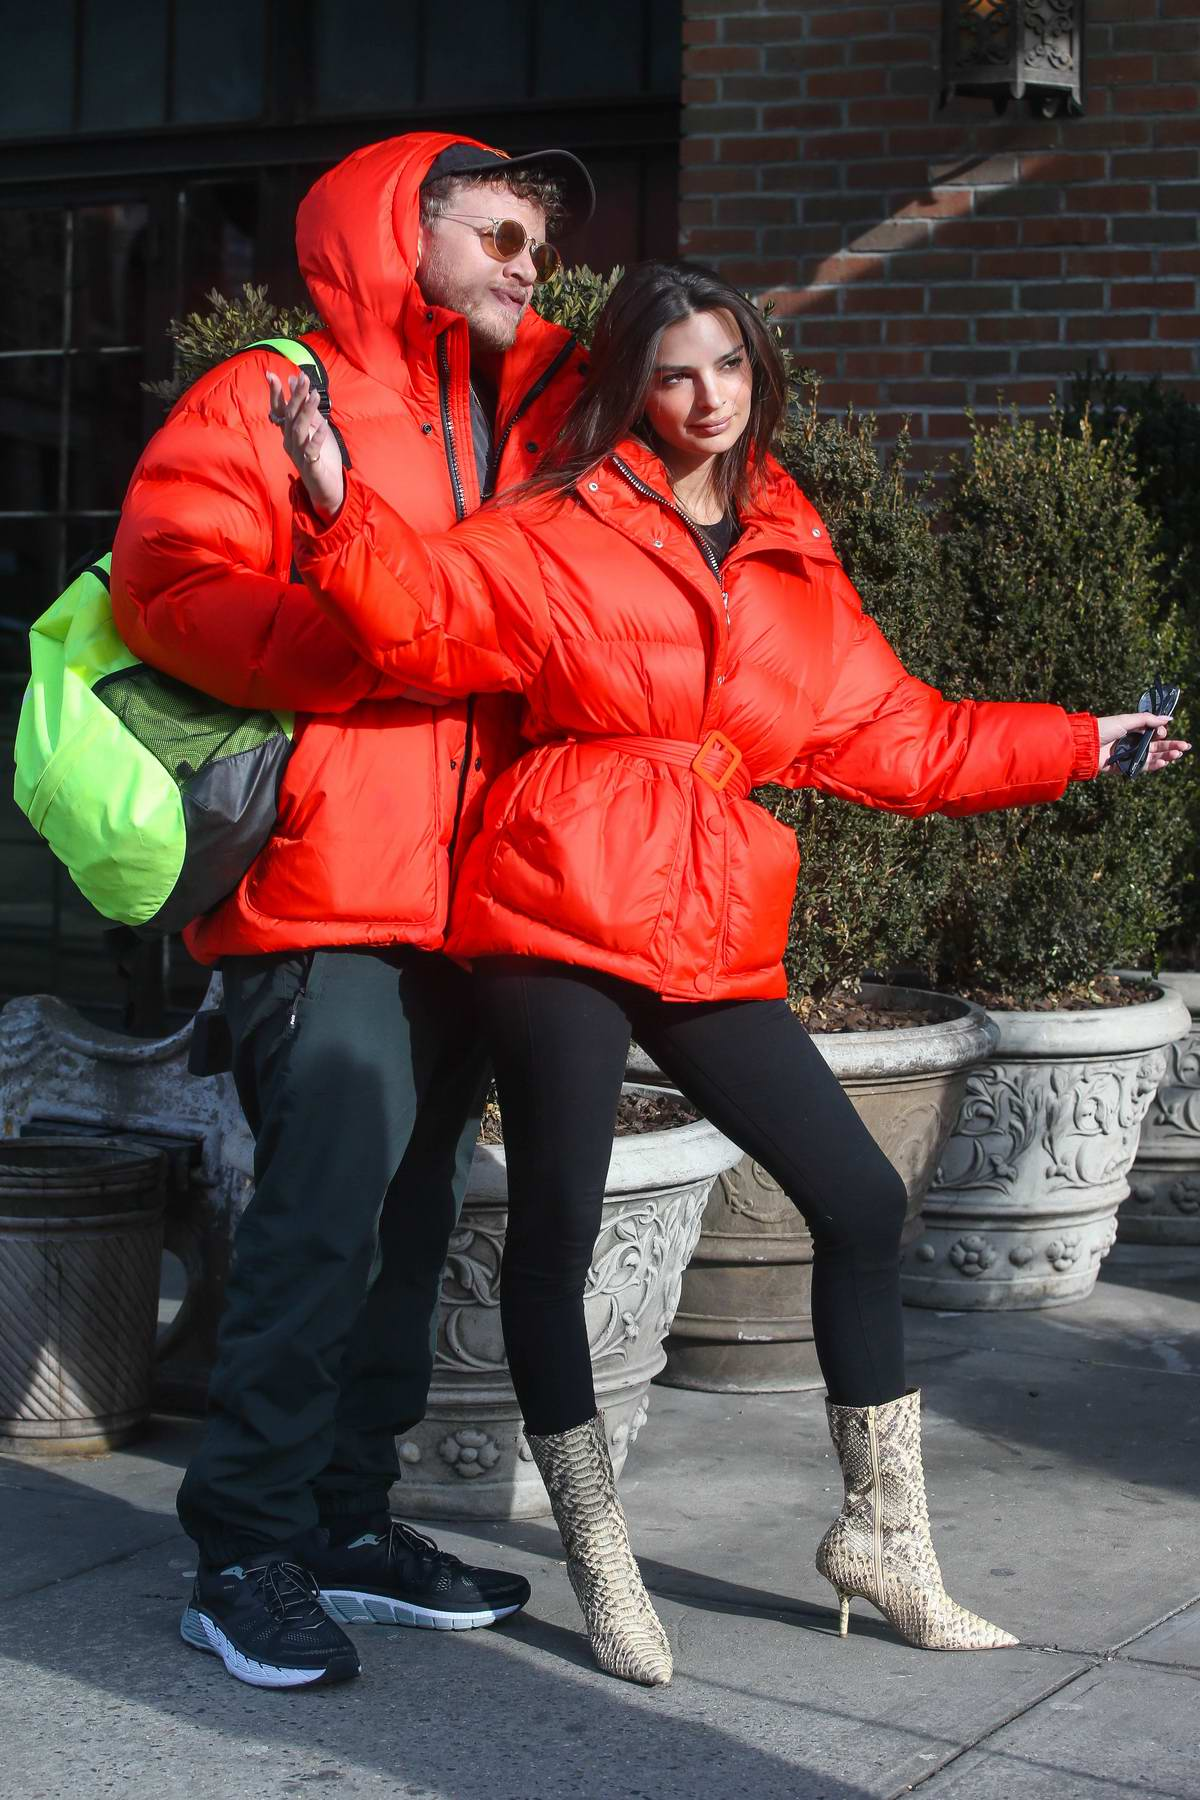 Emily Ratajkowski And Sebastian Bear Mcclard Are Twinning In Red Parkas While Kissing In New York